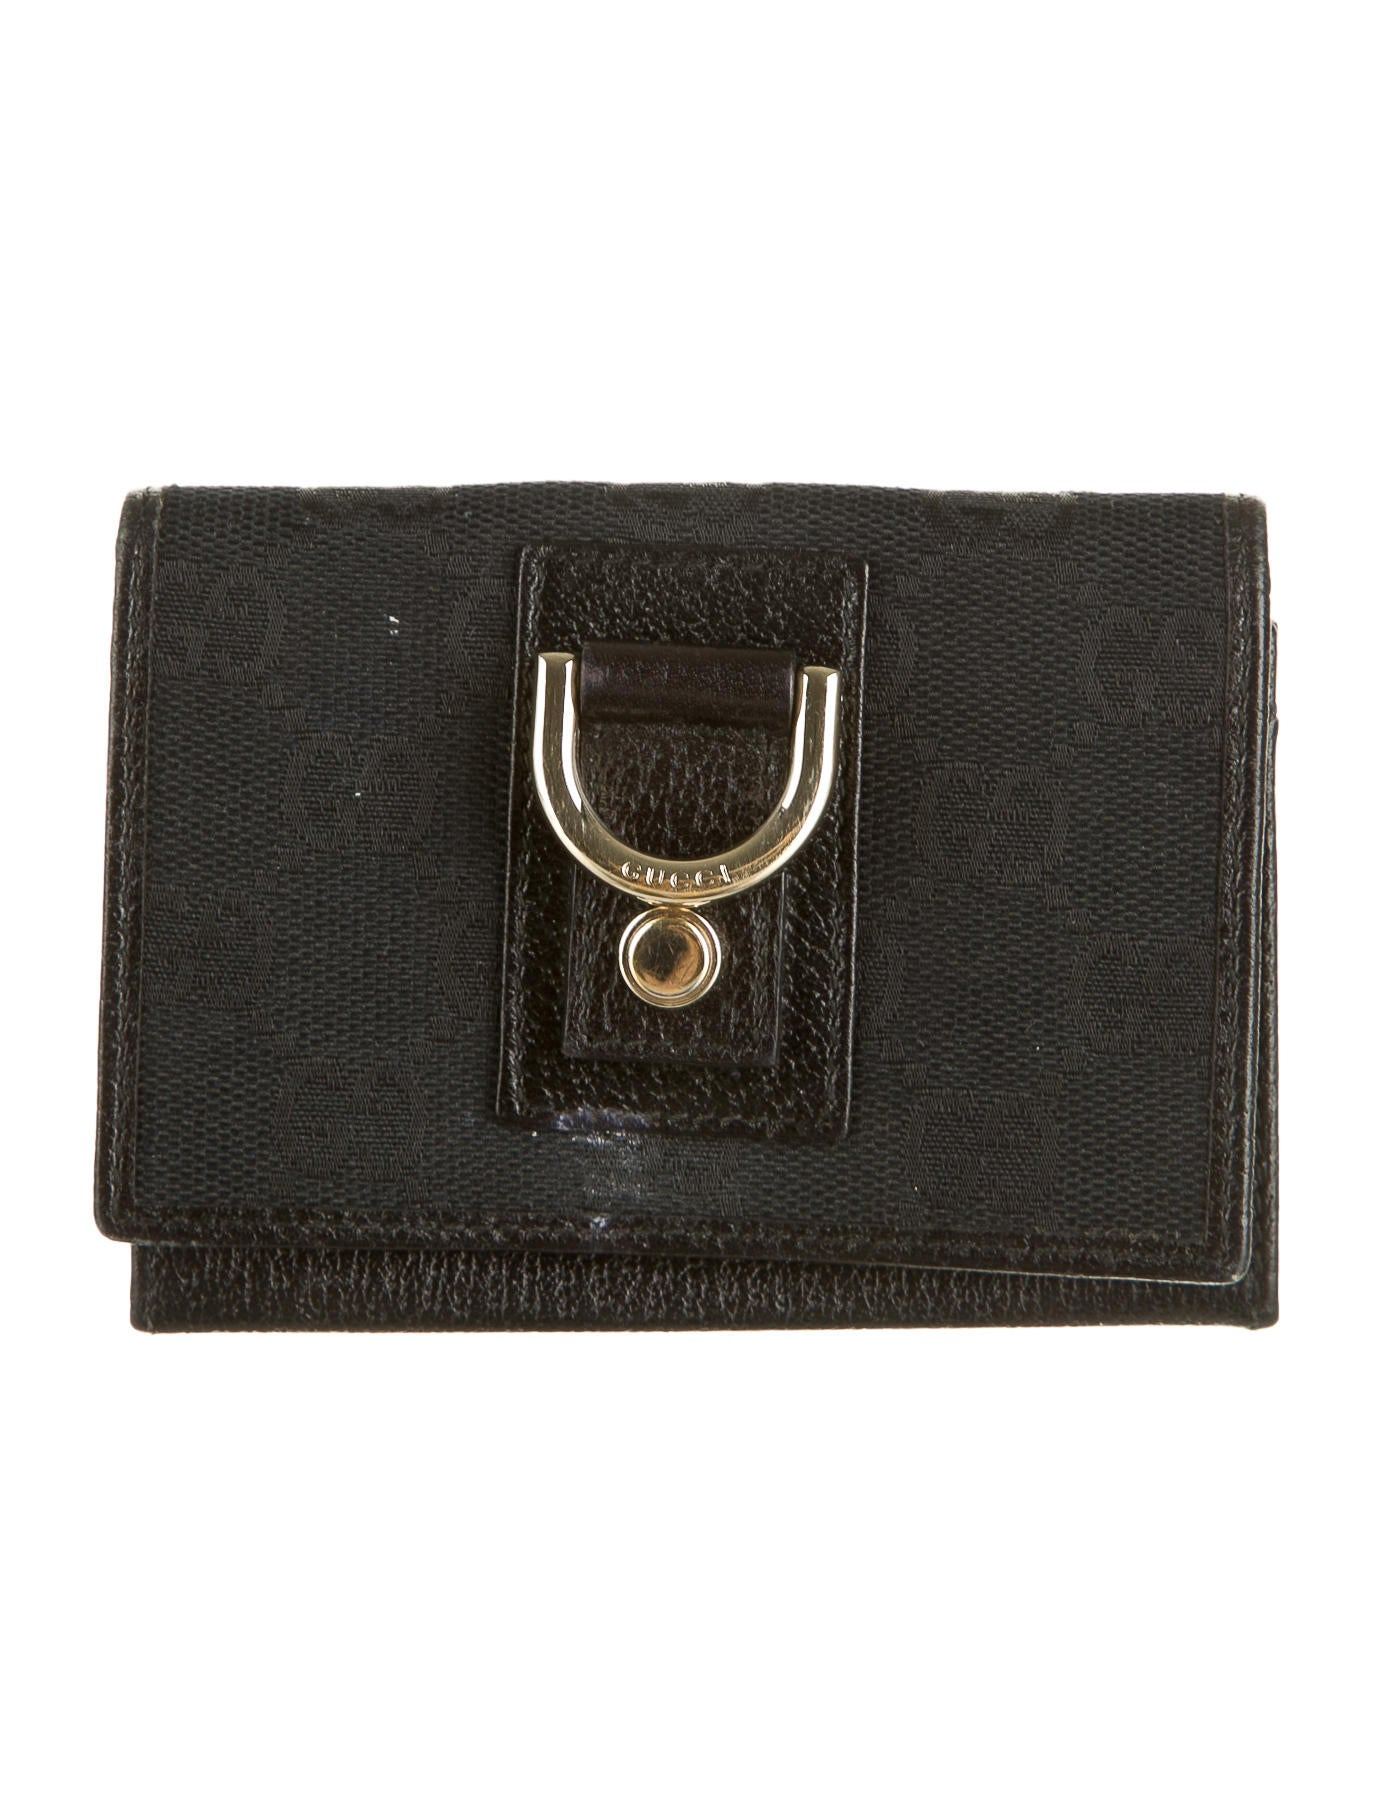 adb00e3a20ee08 Gucci Gg Black Canvas Wallet Womens | Stanford Center for ...